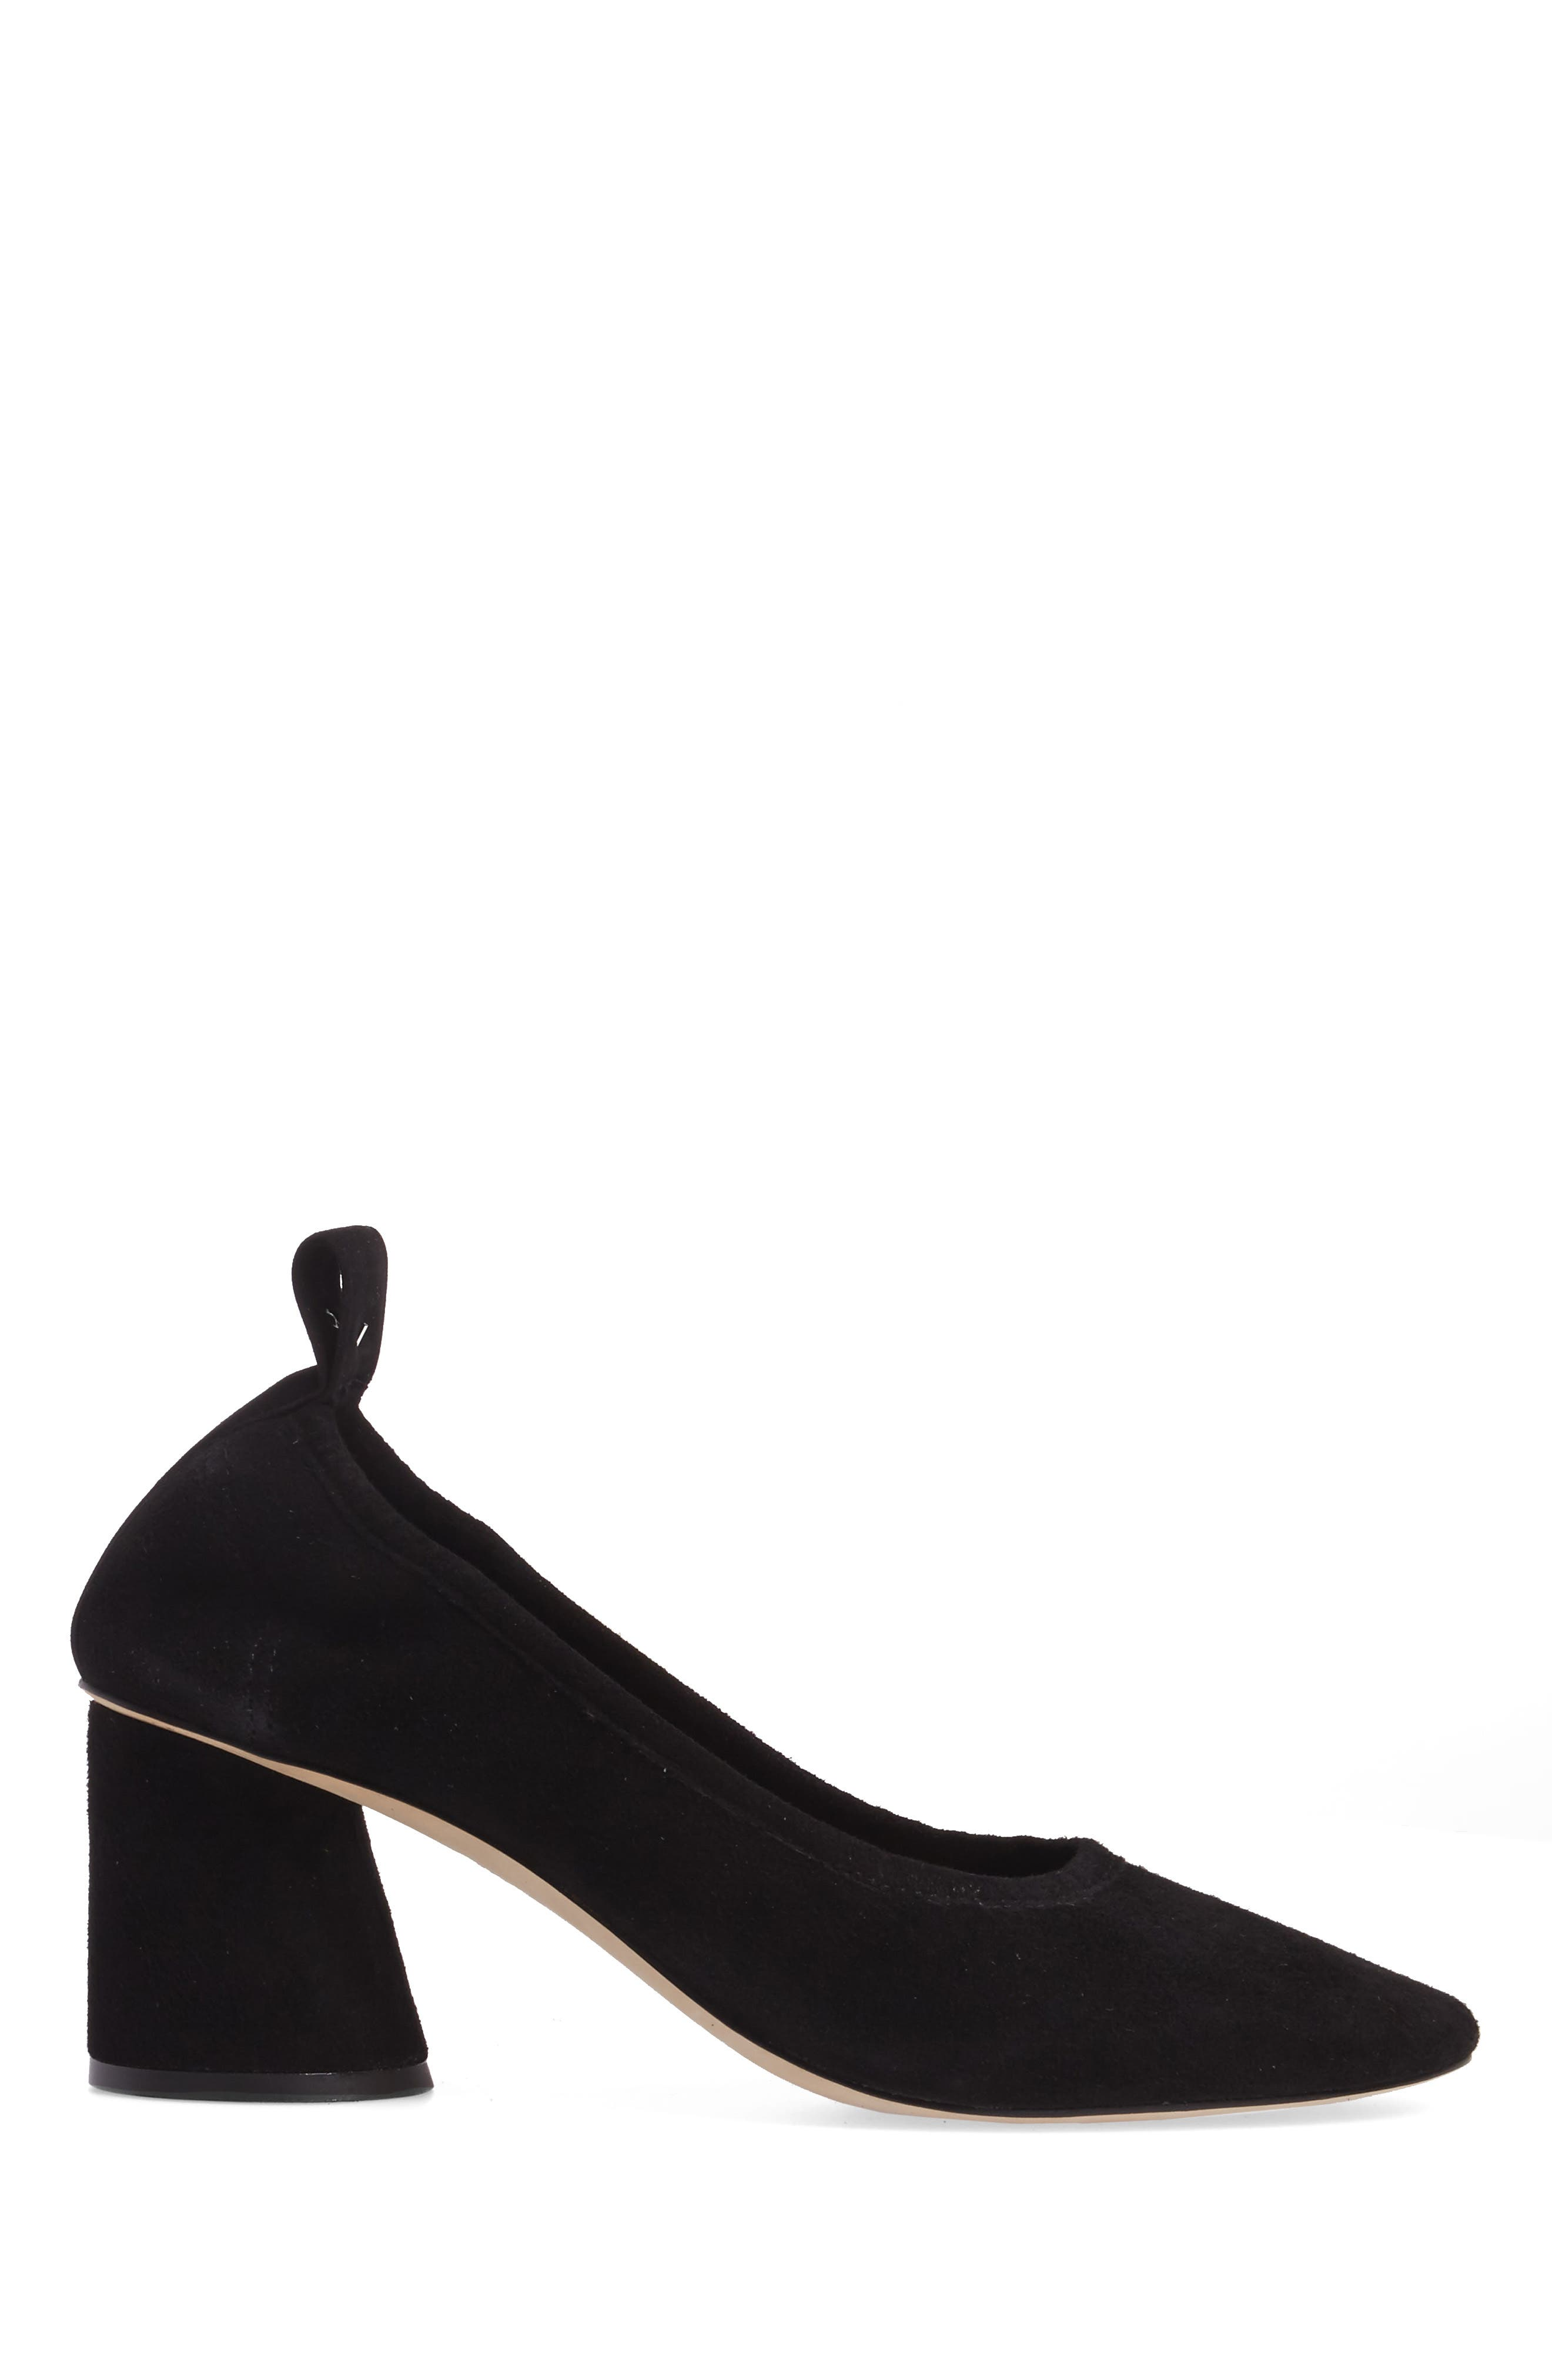 Therese Statement Heel Pump,                             Alternate thumbnail 3, color,                             001